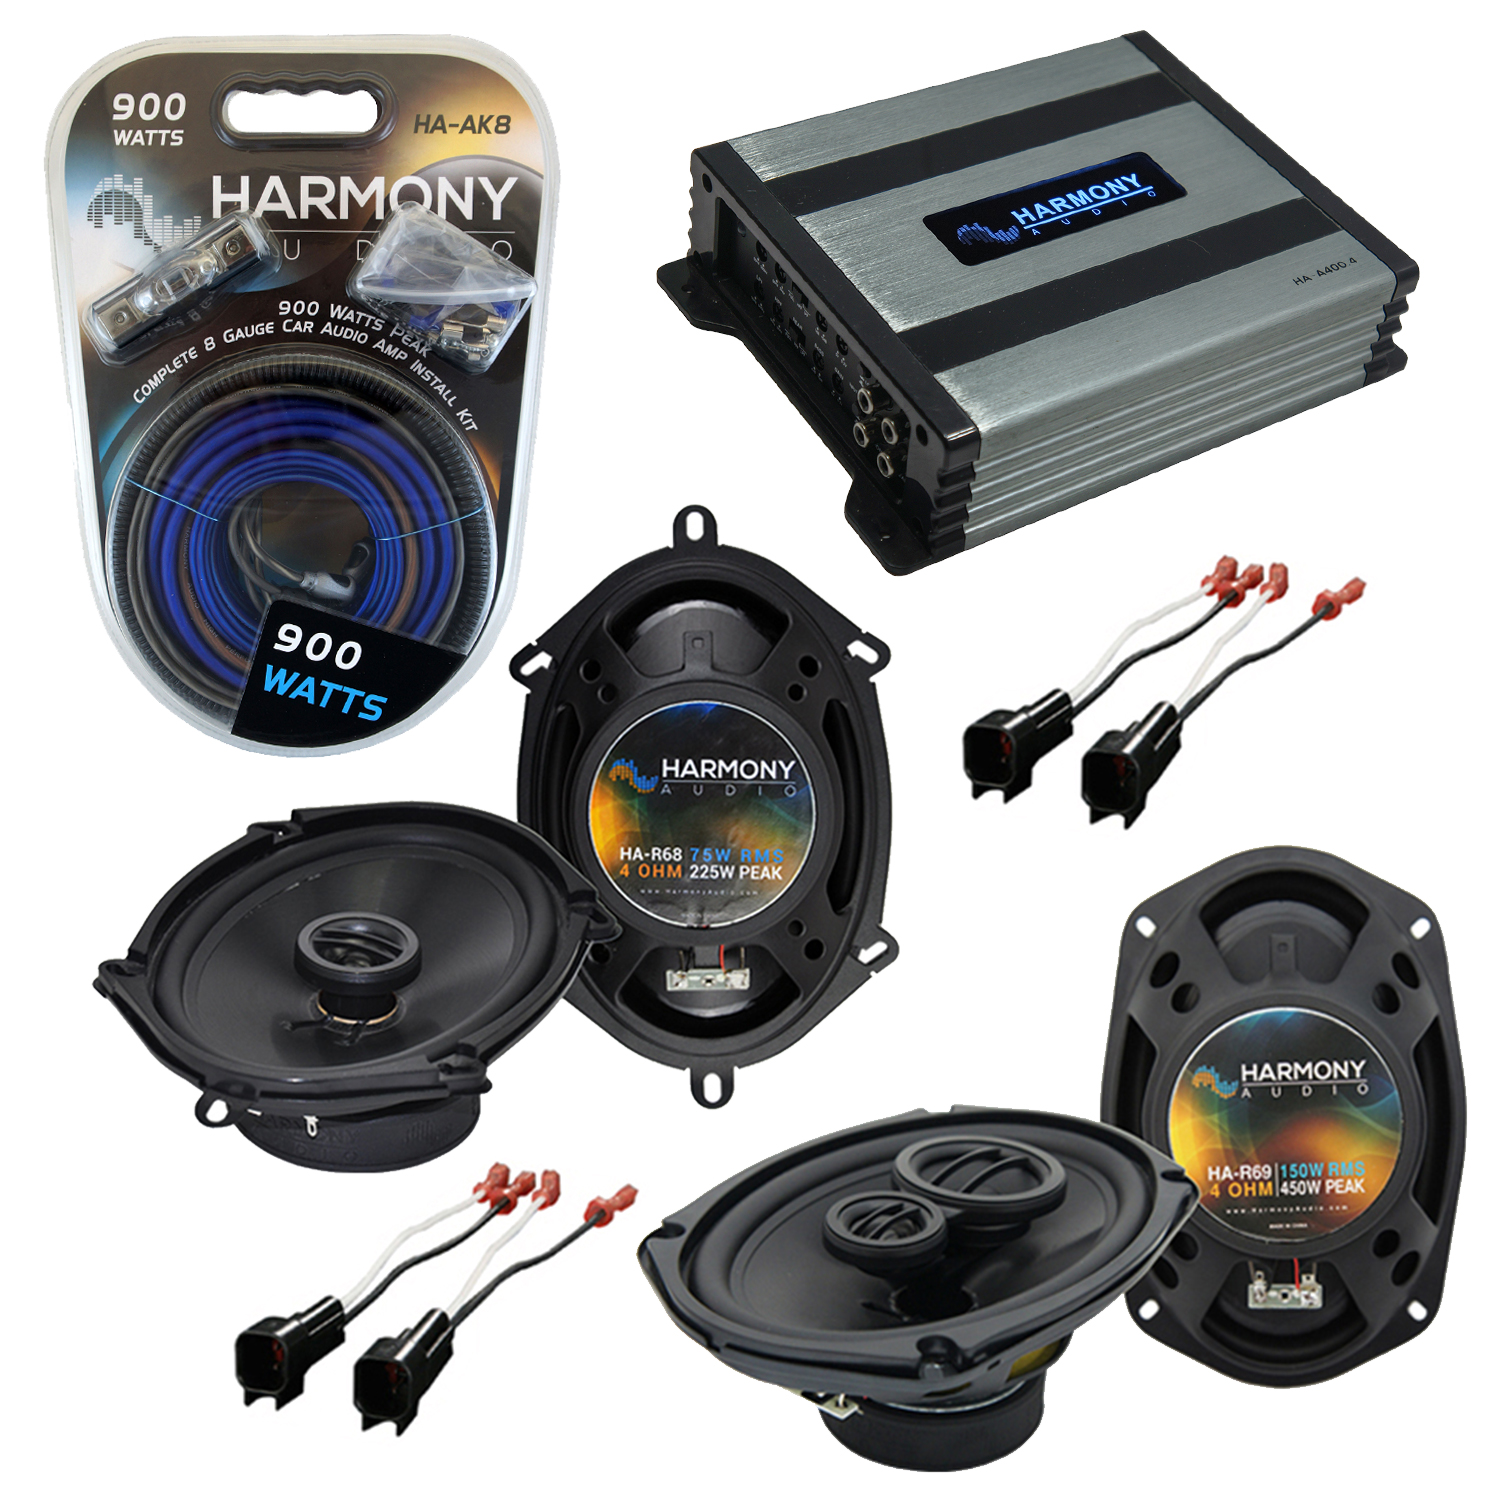 Compatible with Ford Crown Victoria 98-11 OEM Speaker Replacement Harmony R68 R69 & Harmony HA-A400.4 Amp